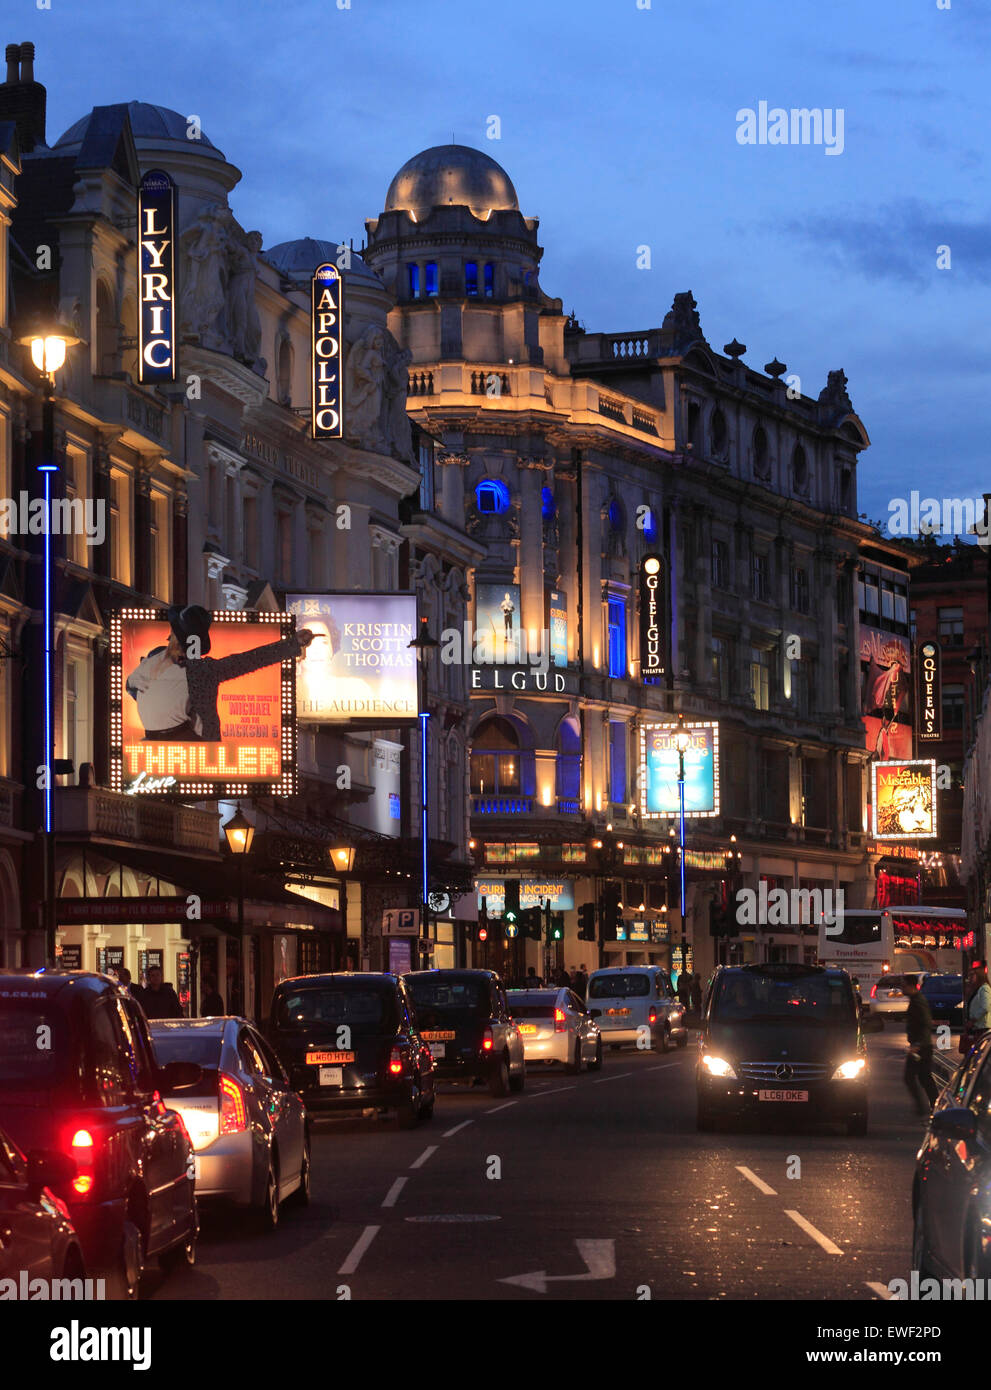 Shaftesbury Avenue Theatres in London West End. - Stock Image